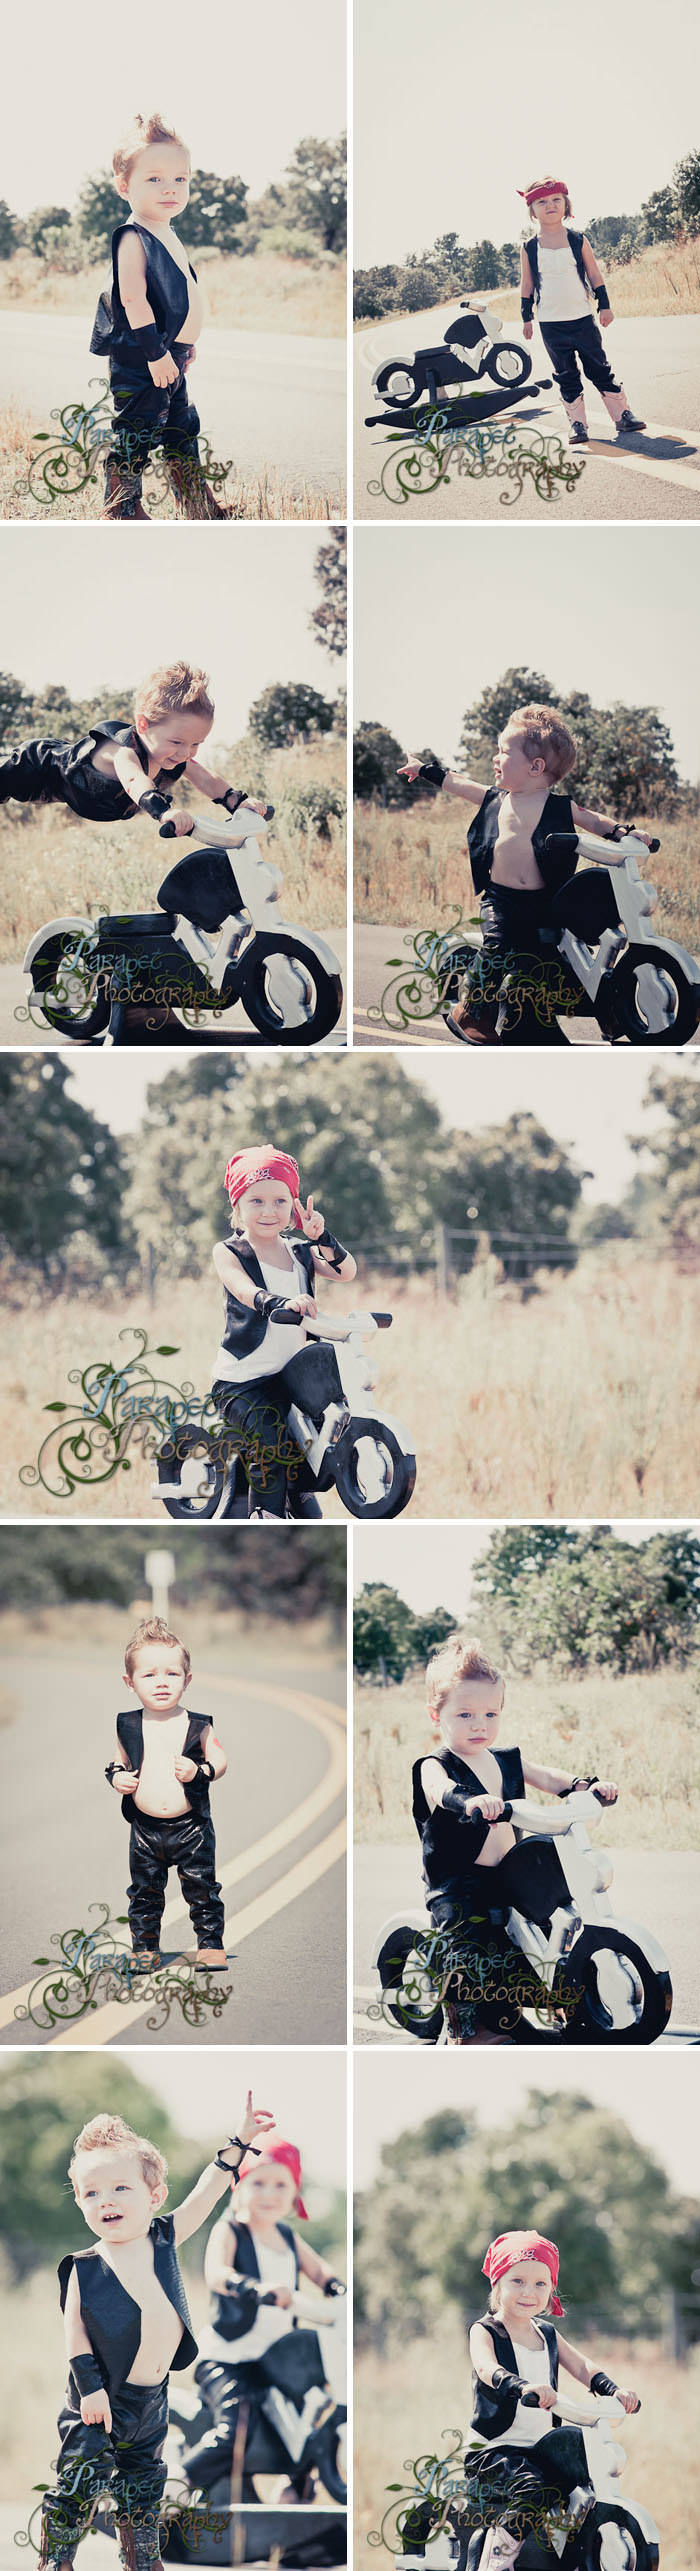 A basic guide on how to put together a biker themed children's photo shoot with costume, prop, and location ideas and tutorials